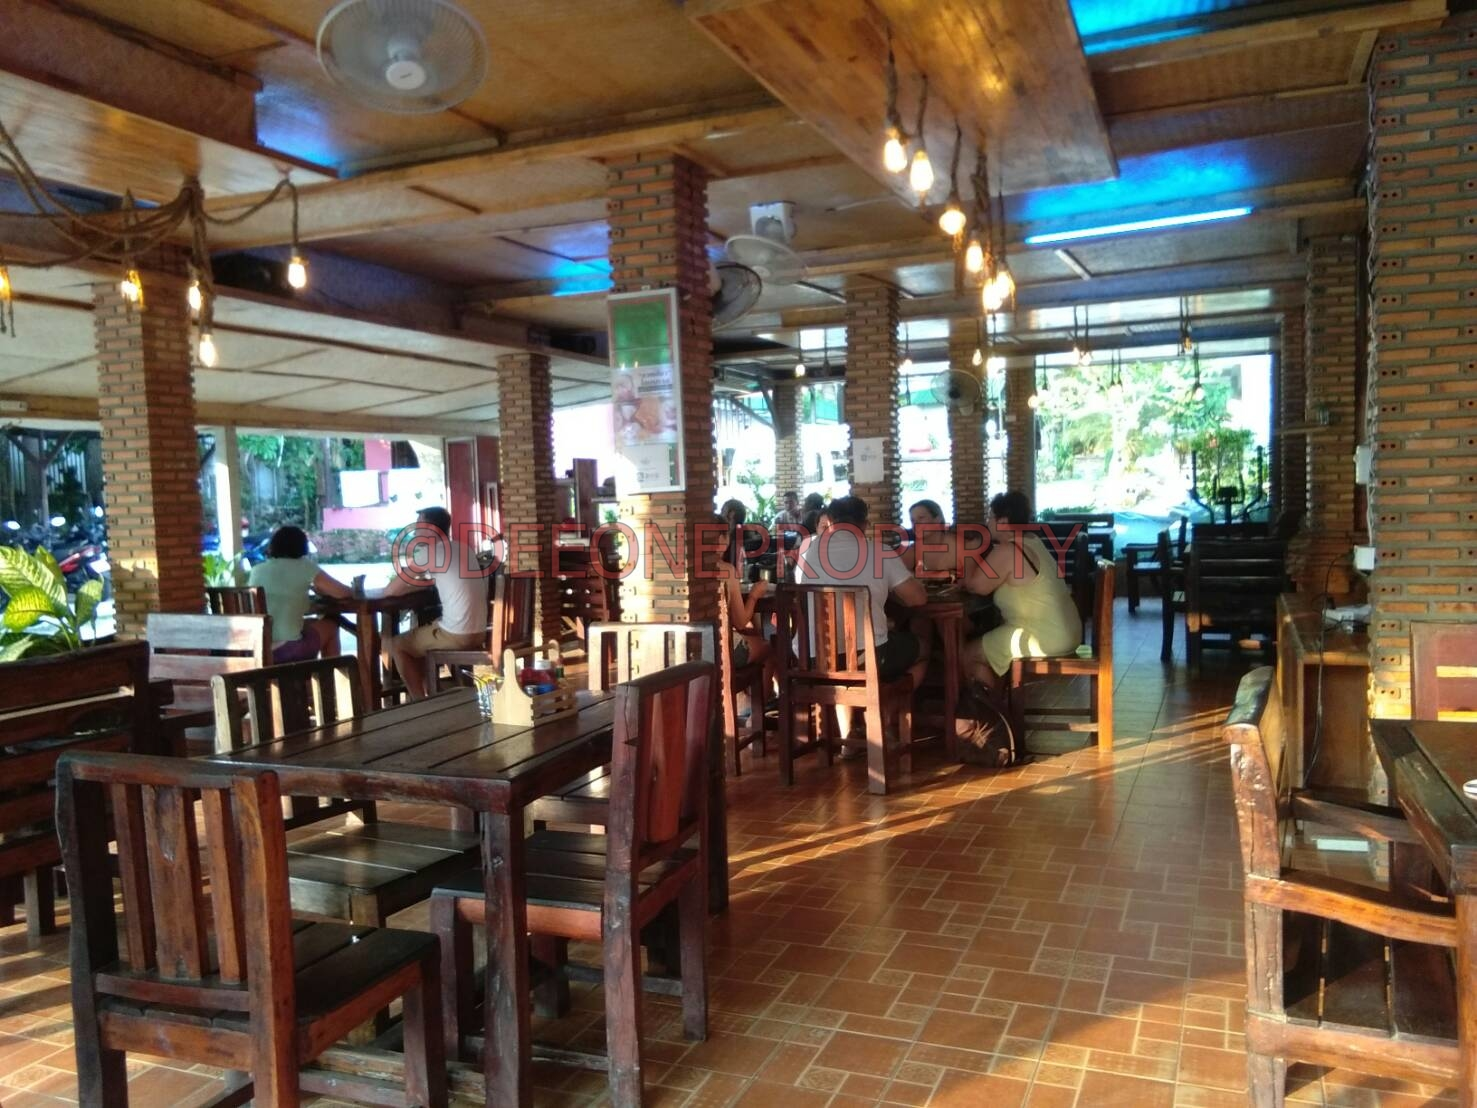 Restaurant Fully Furnished in Center for Rent – White Sand Beach, Koh Chang